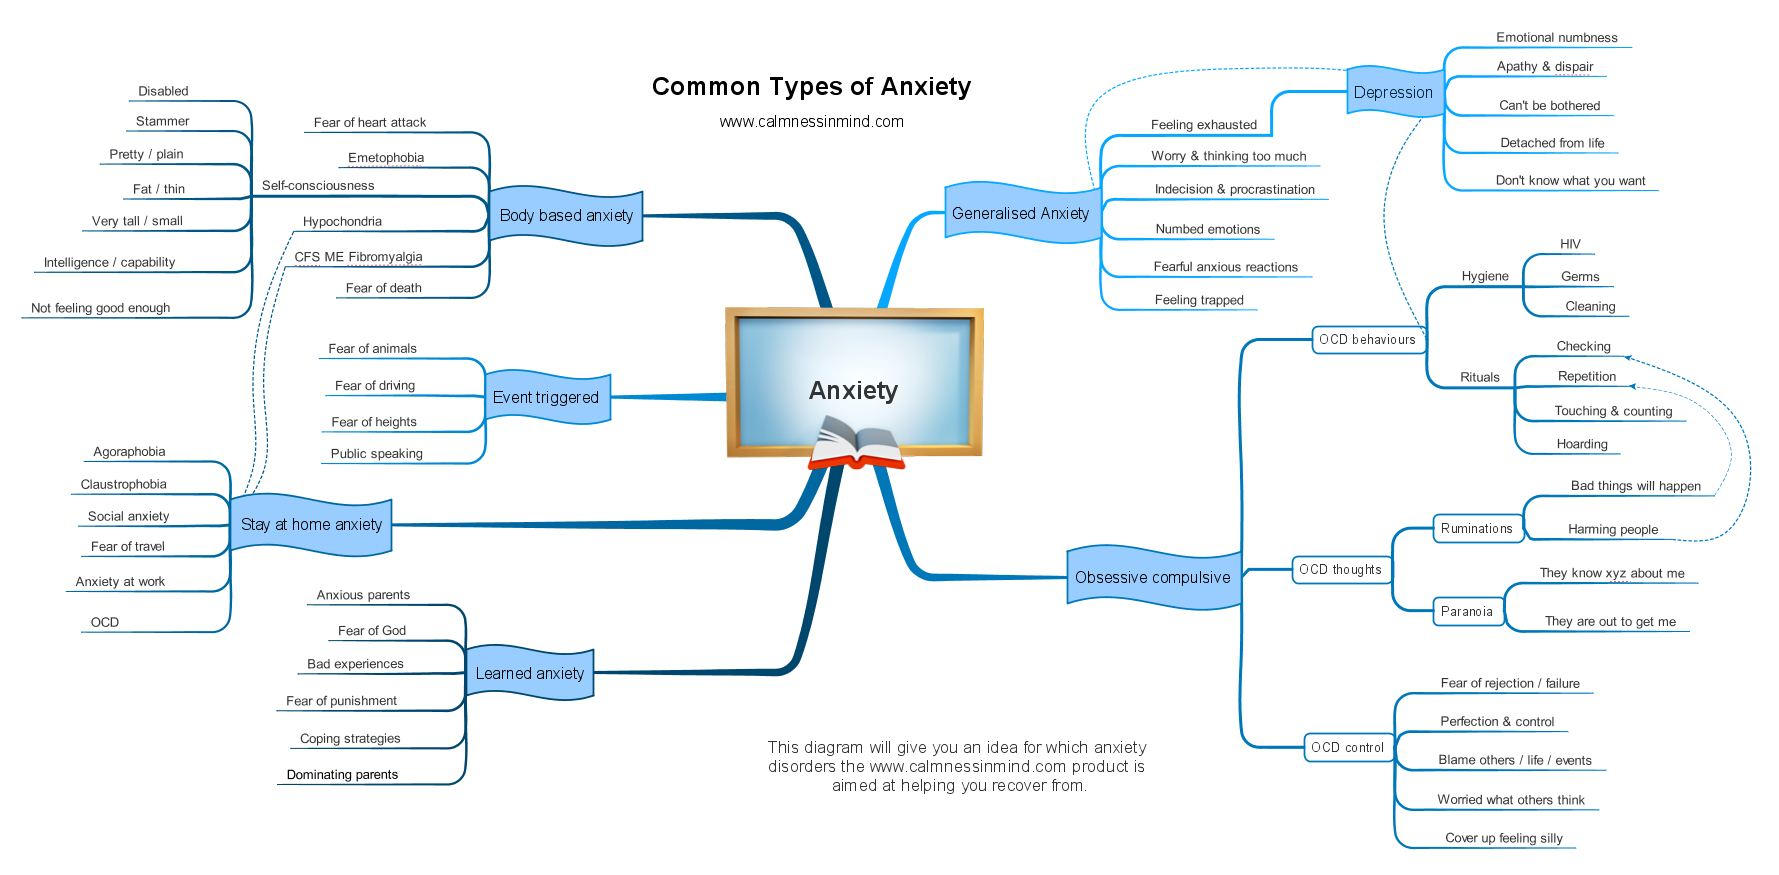 common-types-of-anxiety-disorder